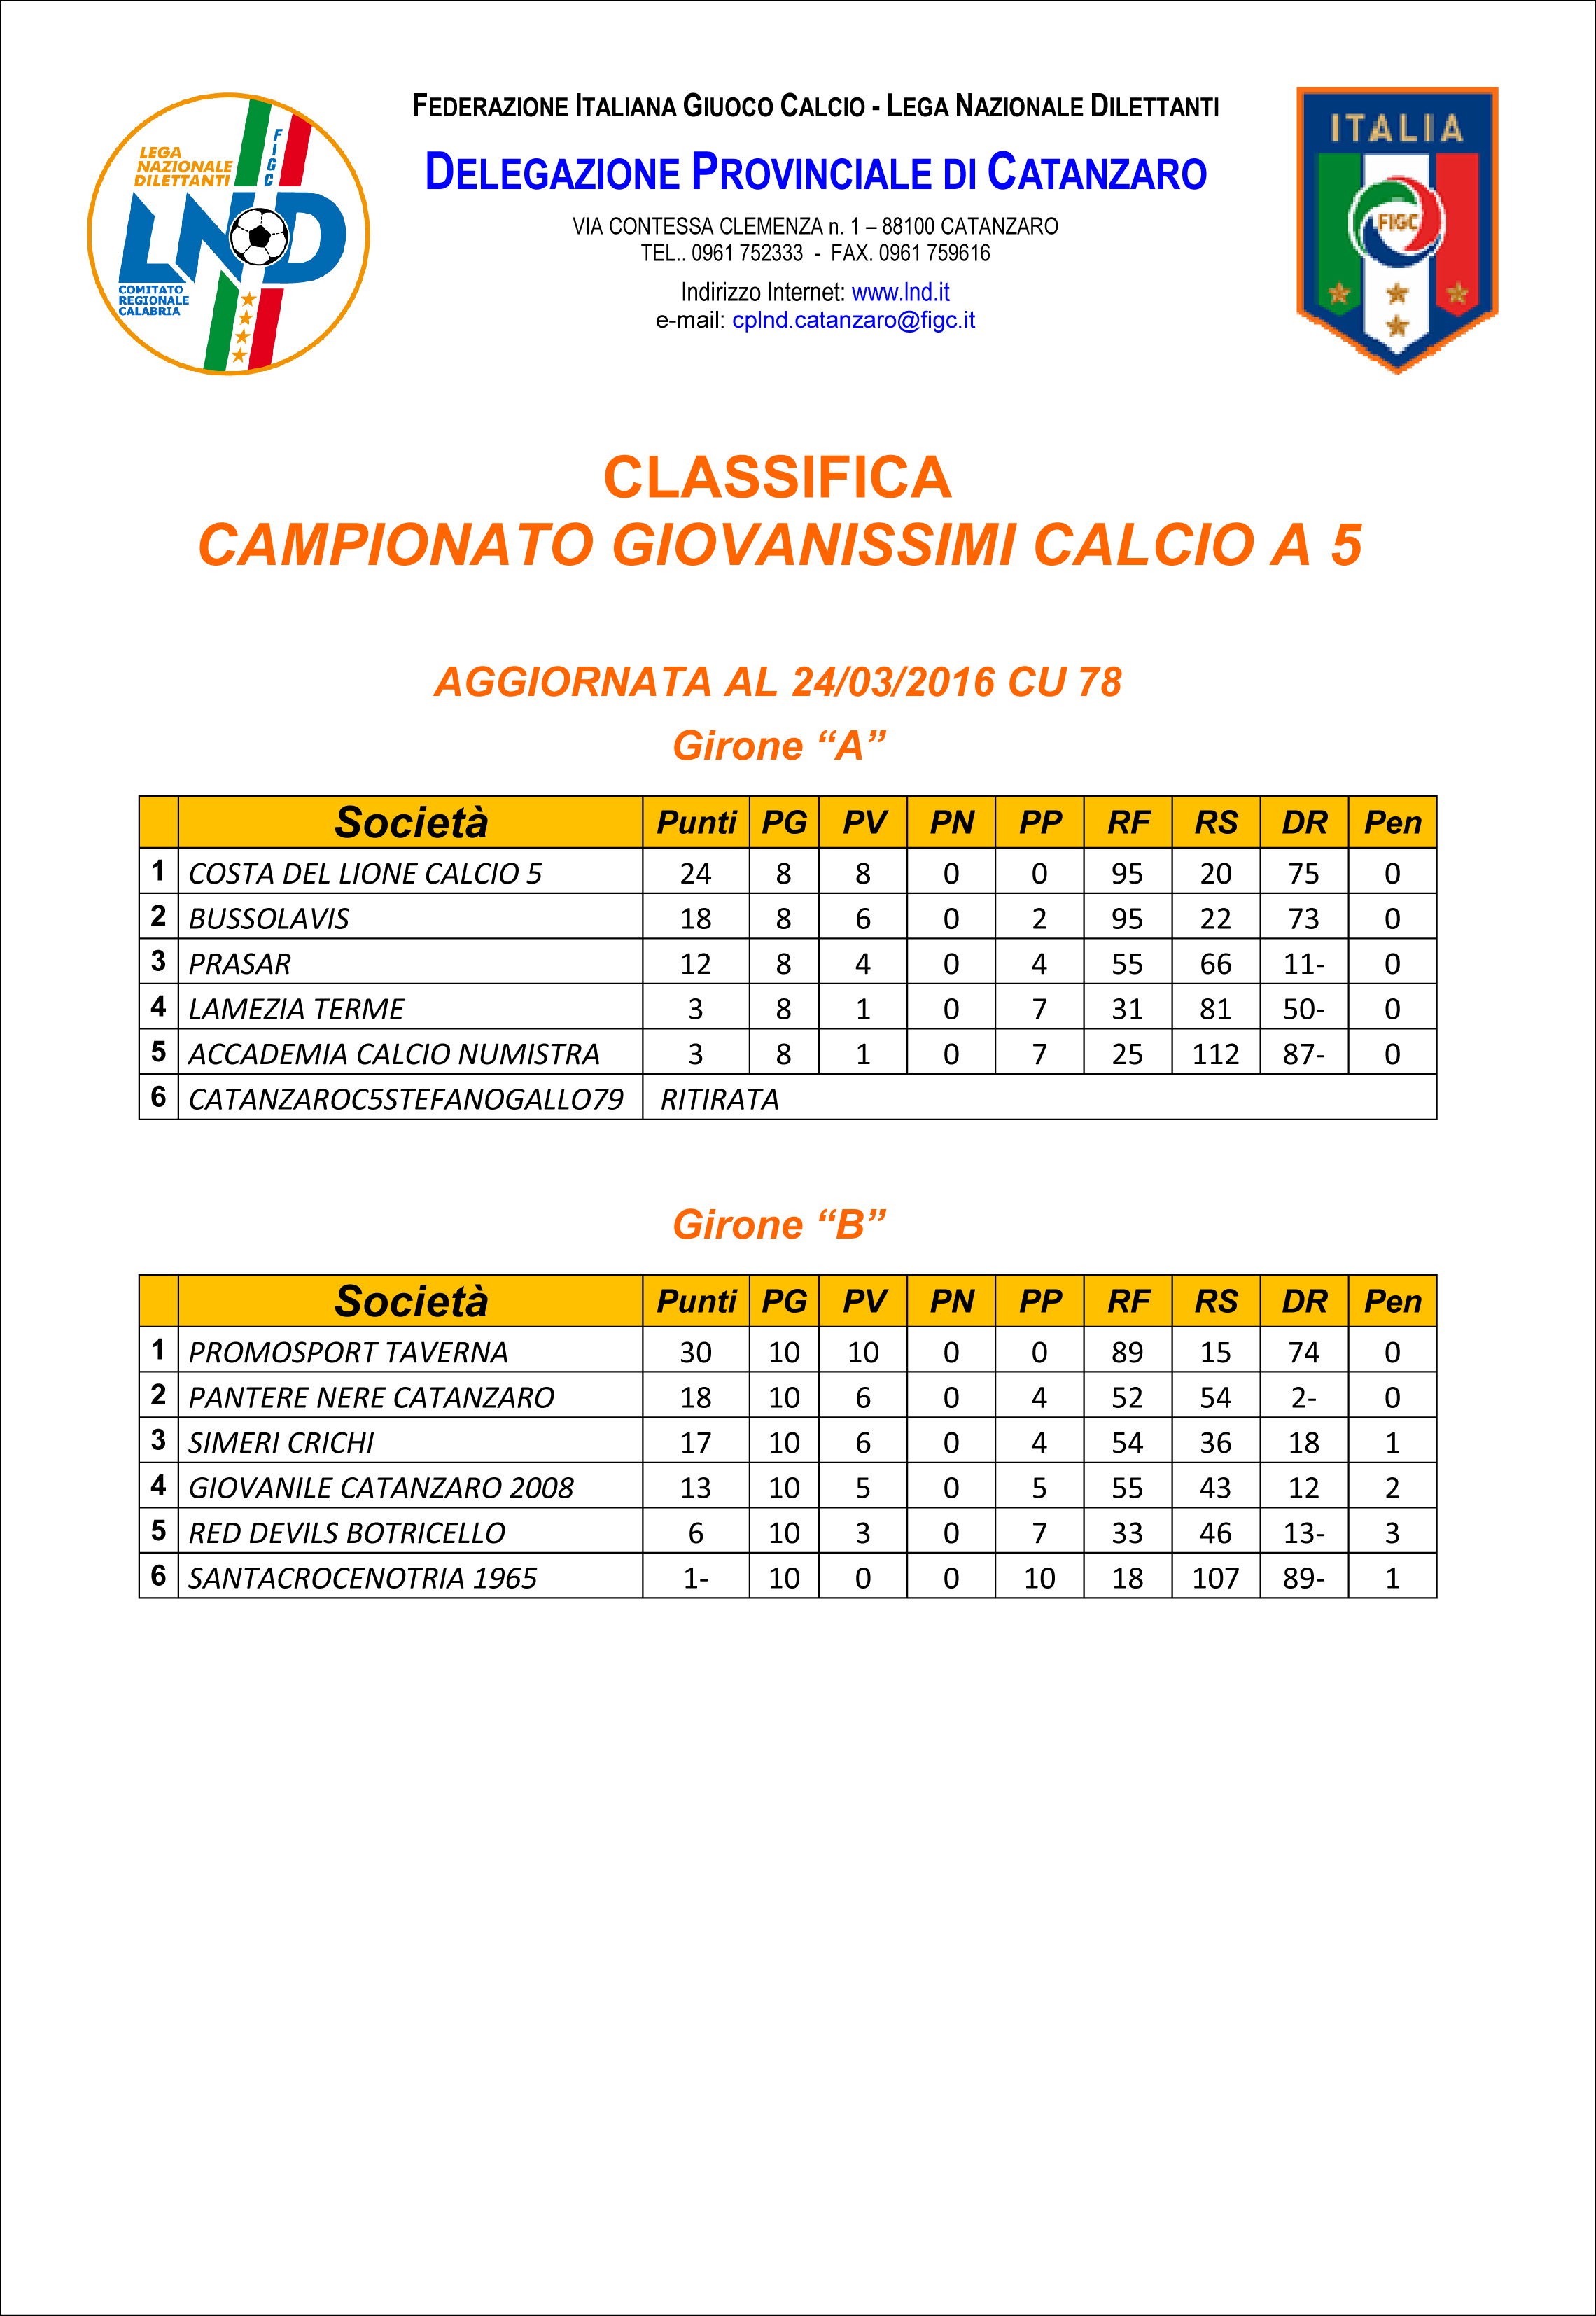 CLASSIFICA CAMPIONATO CALCIO A 5